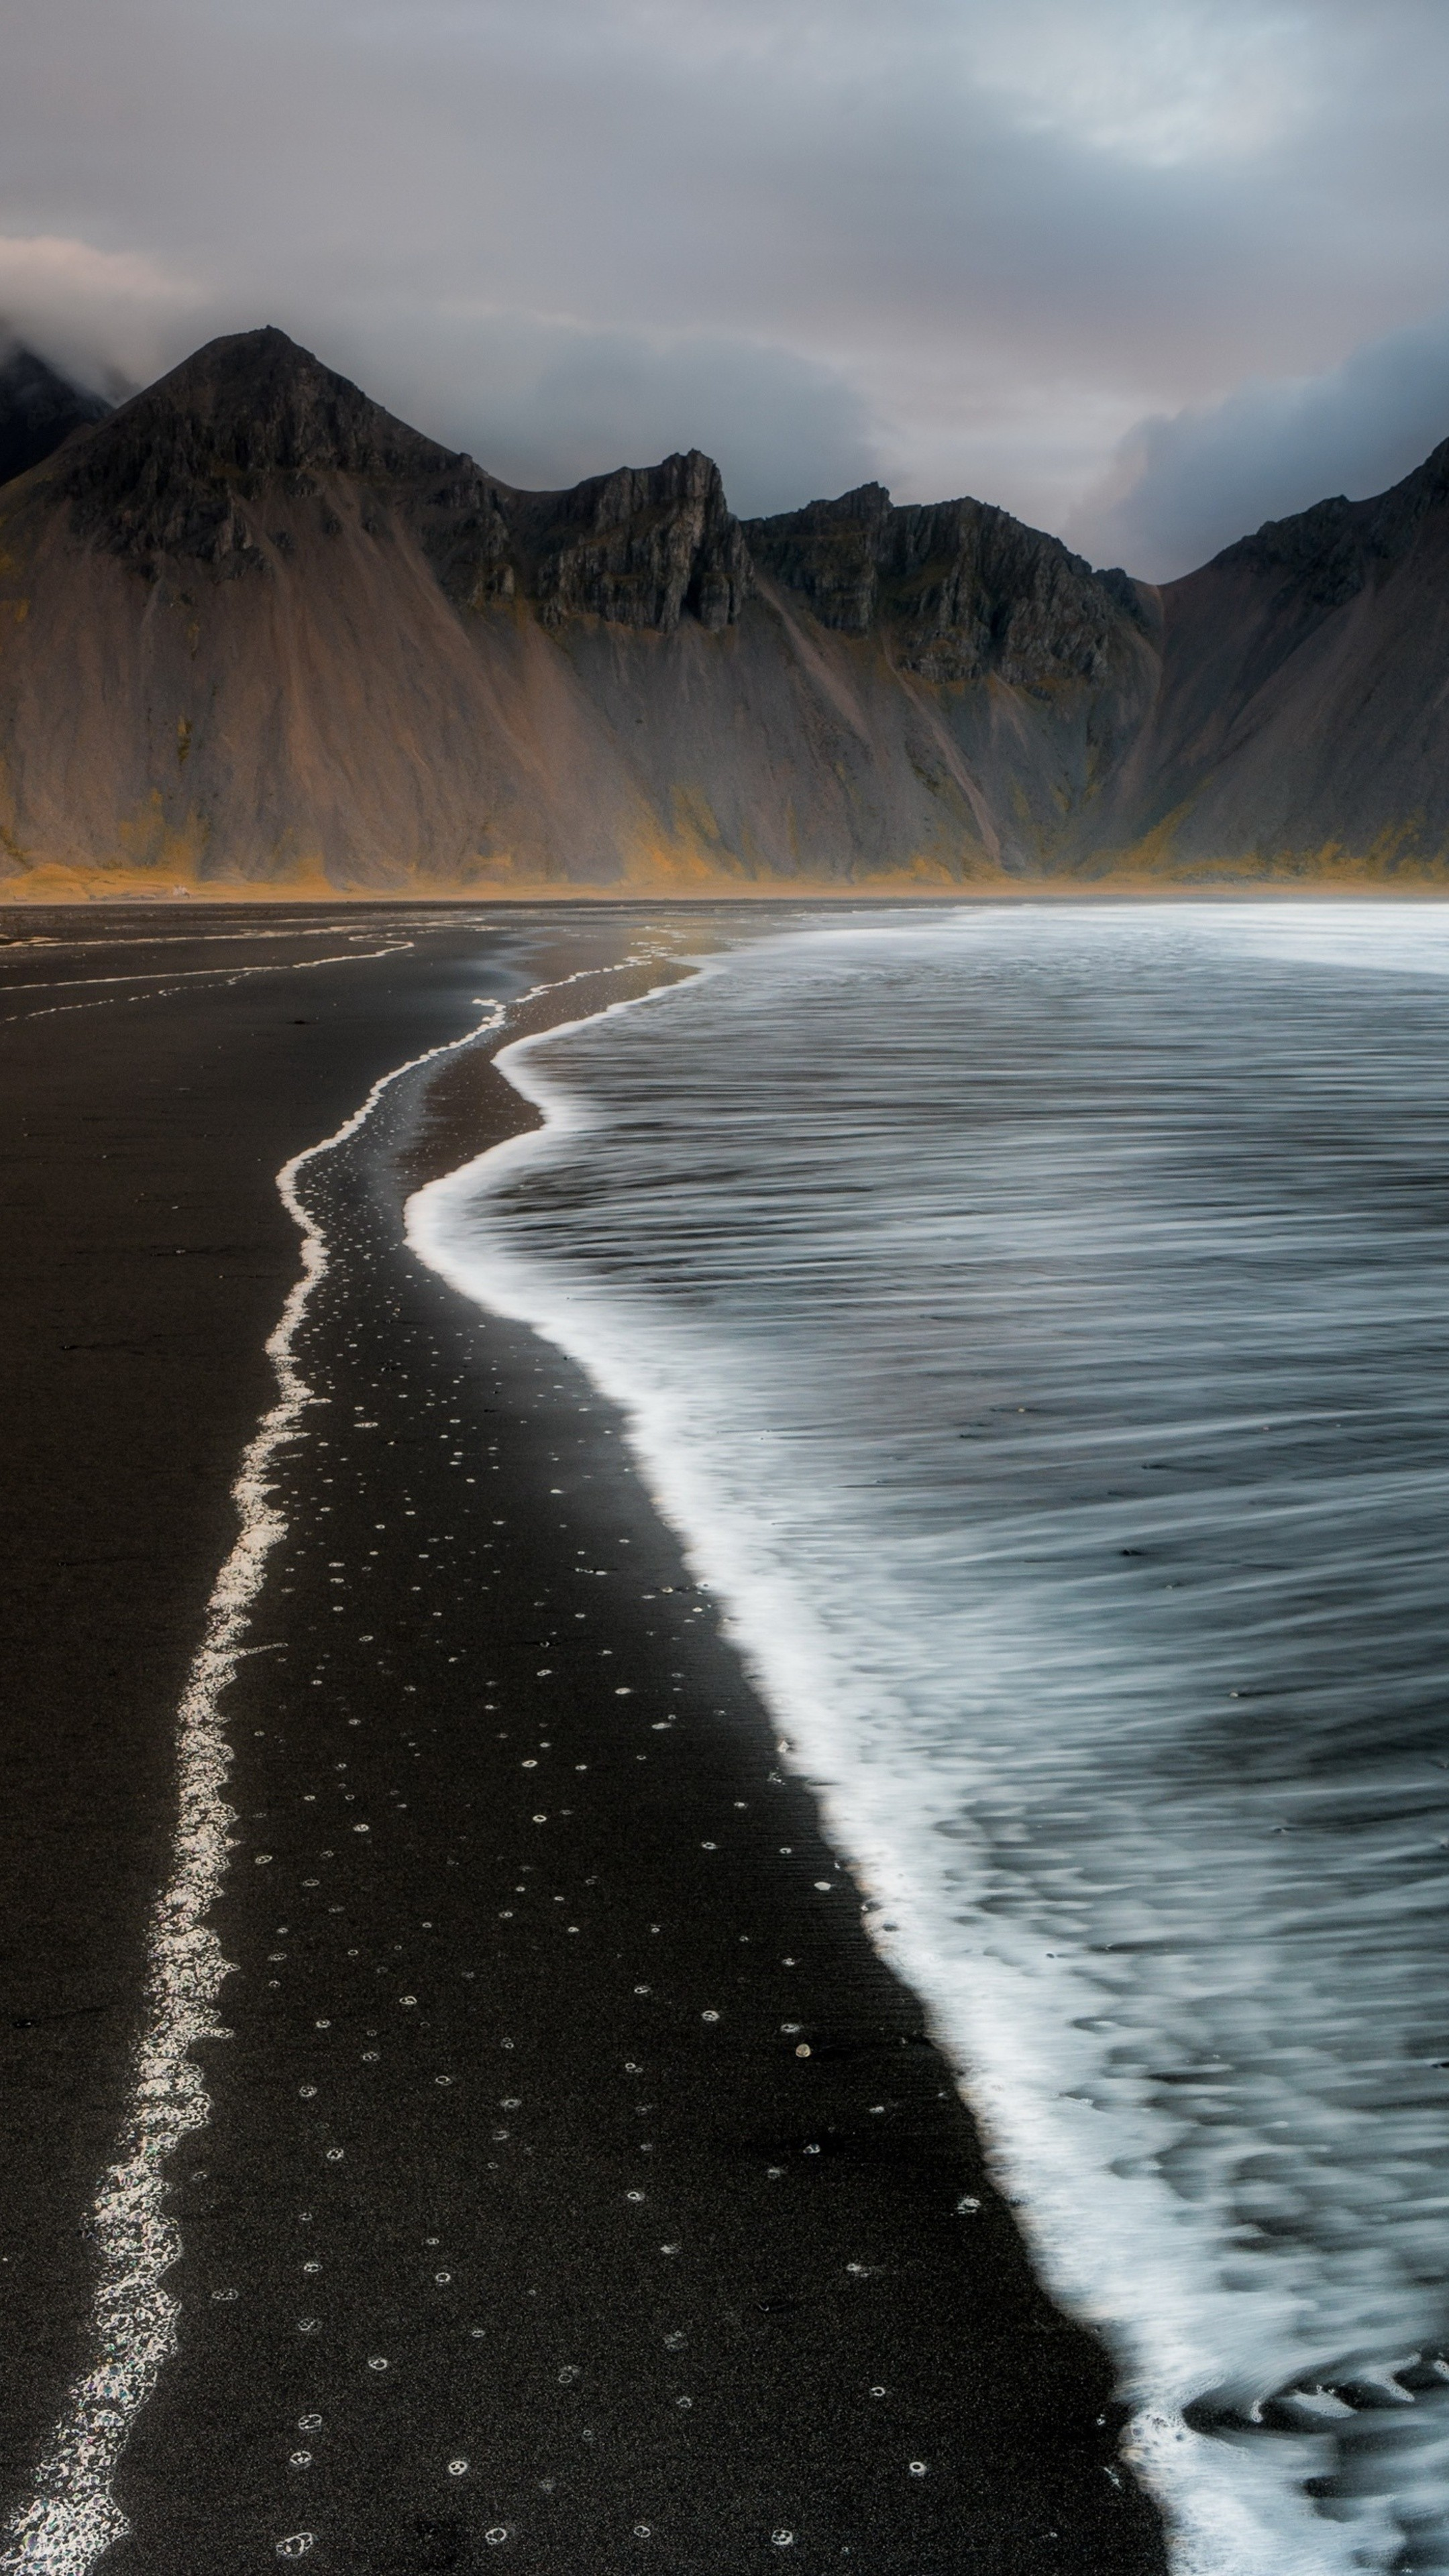 Beach foam iceland mountain nature t0 wallpaper 2160x3840 - 2160x3840 wallpaper ...